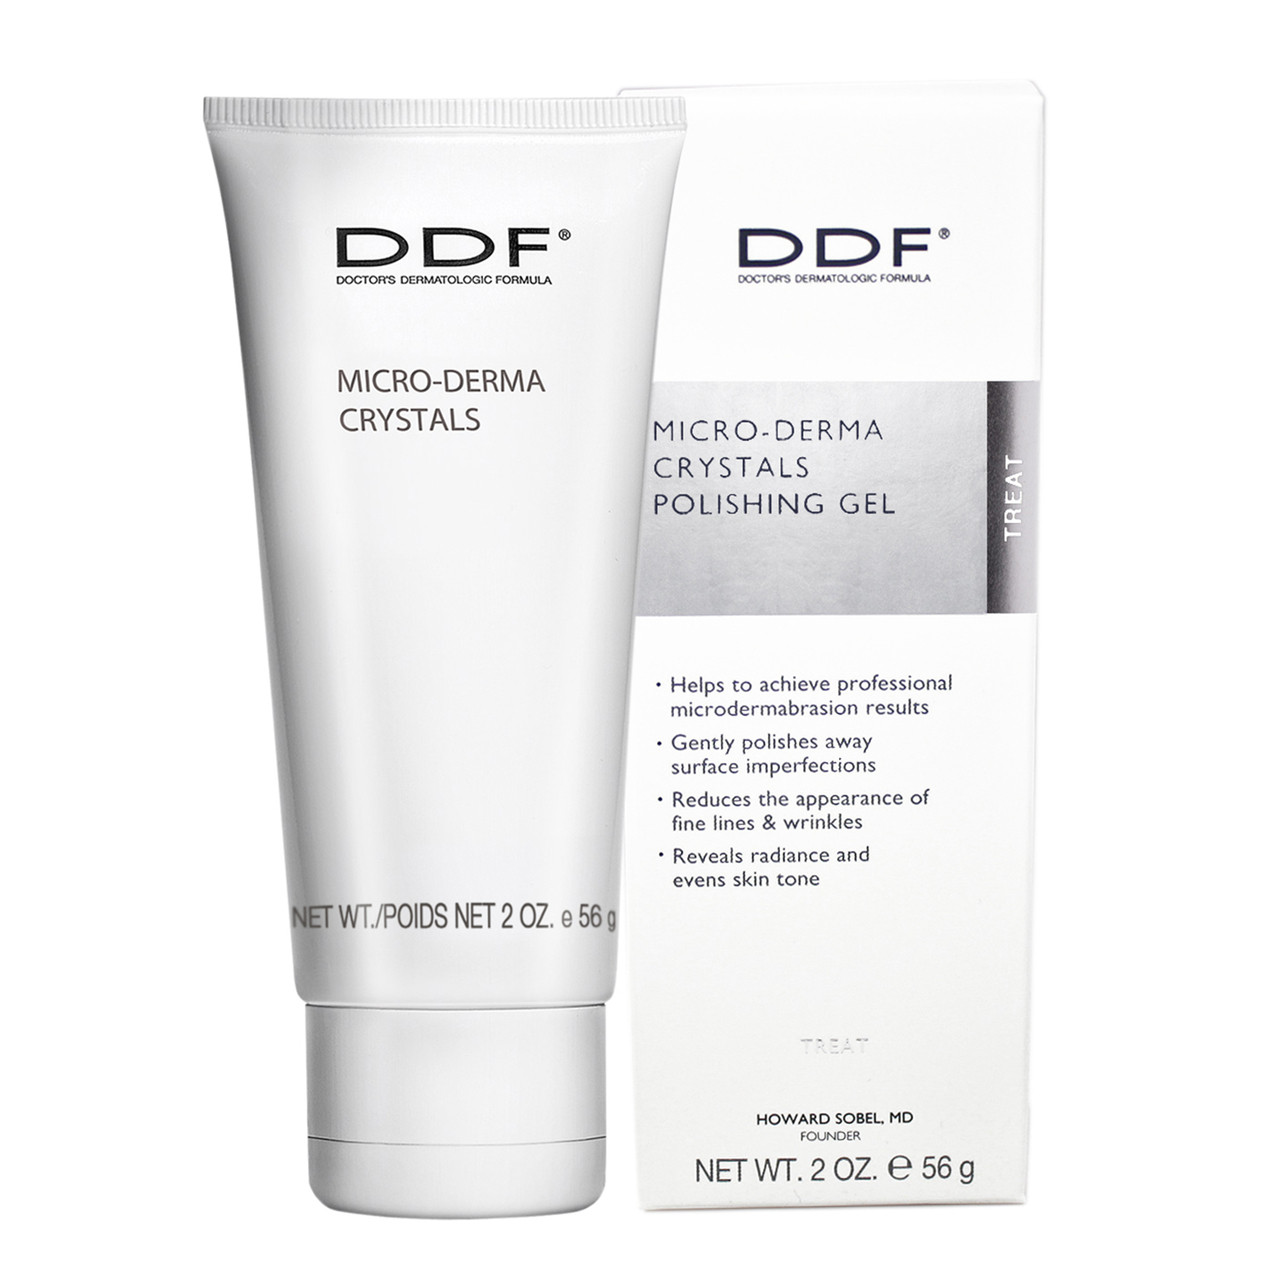 DDF Micro-Derma Crystals Polishing Gel